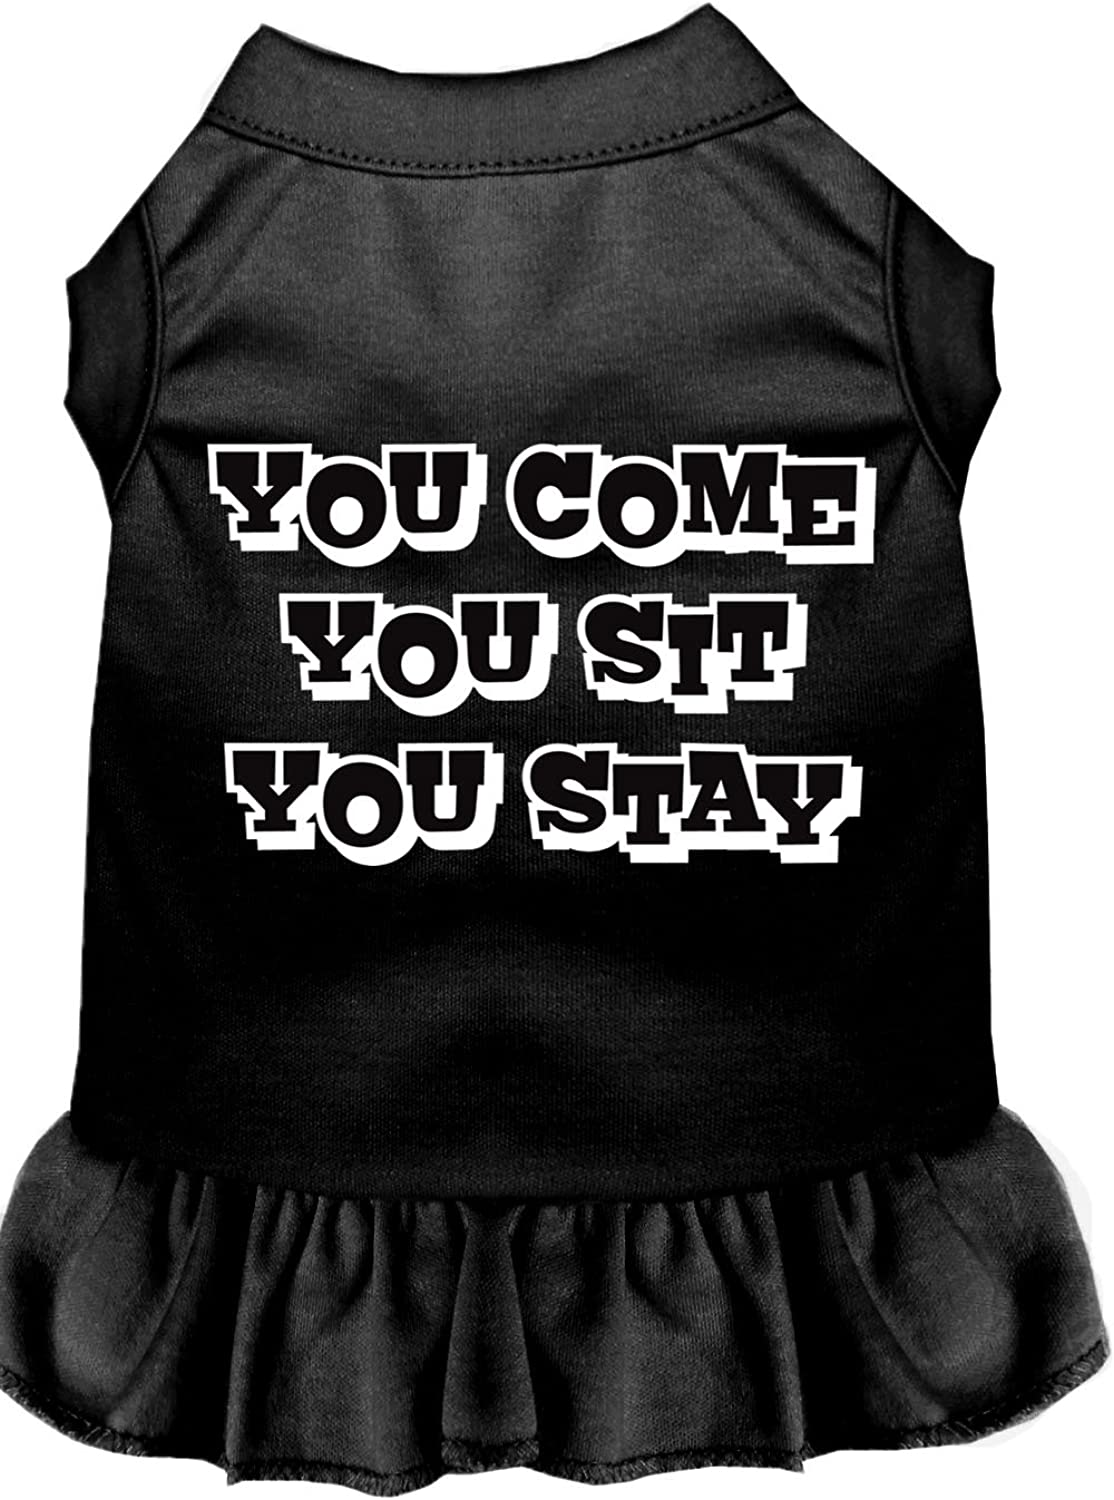 Mirage Pet Products 5818 XLBK You Come, You Sit, You Stay Screen Print Dress, XLarge, Black